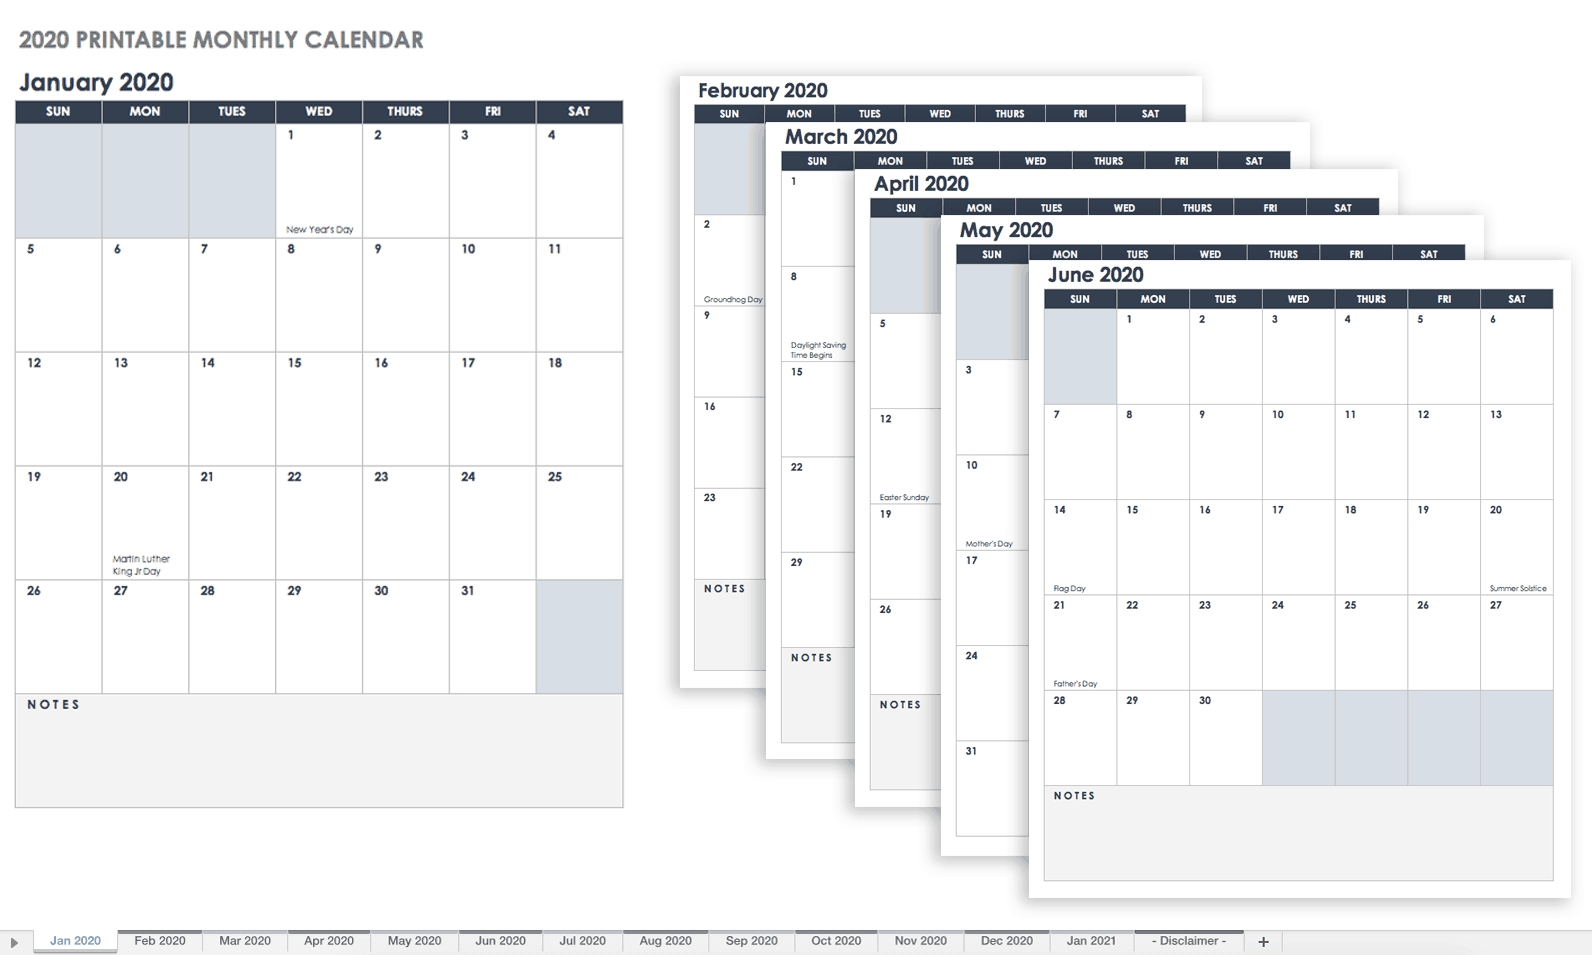 Free Blank Calendar Templates - Smartsheet Free Printable Calendars Without Weekends